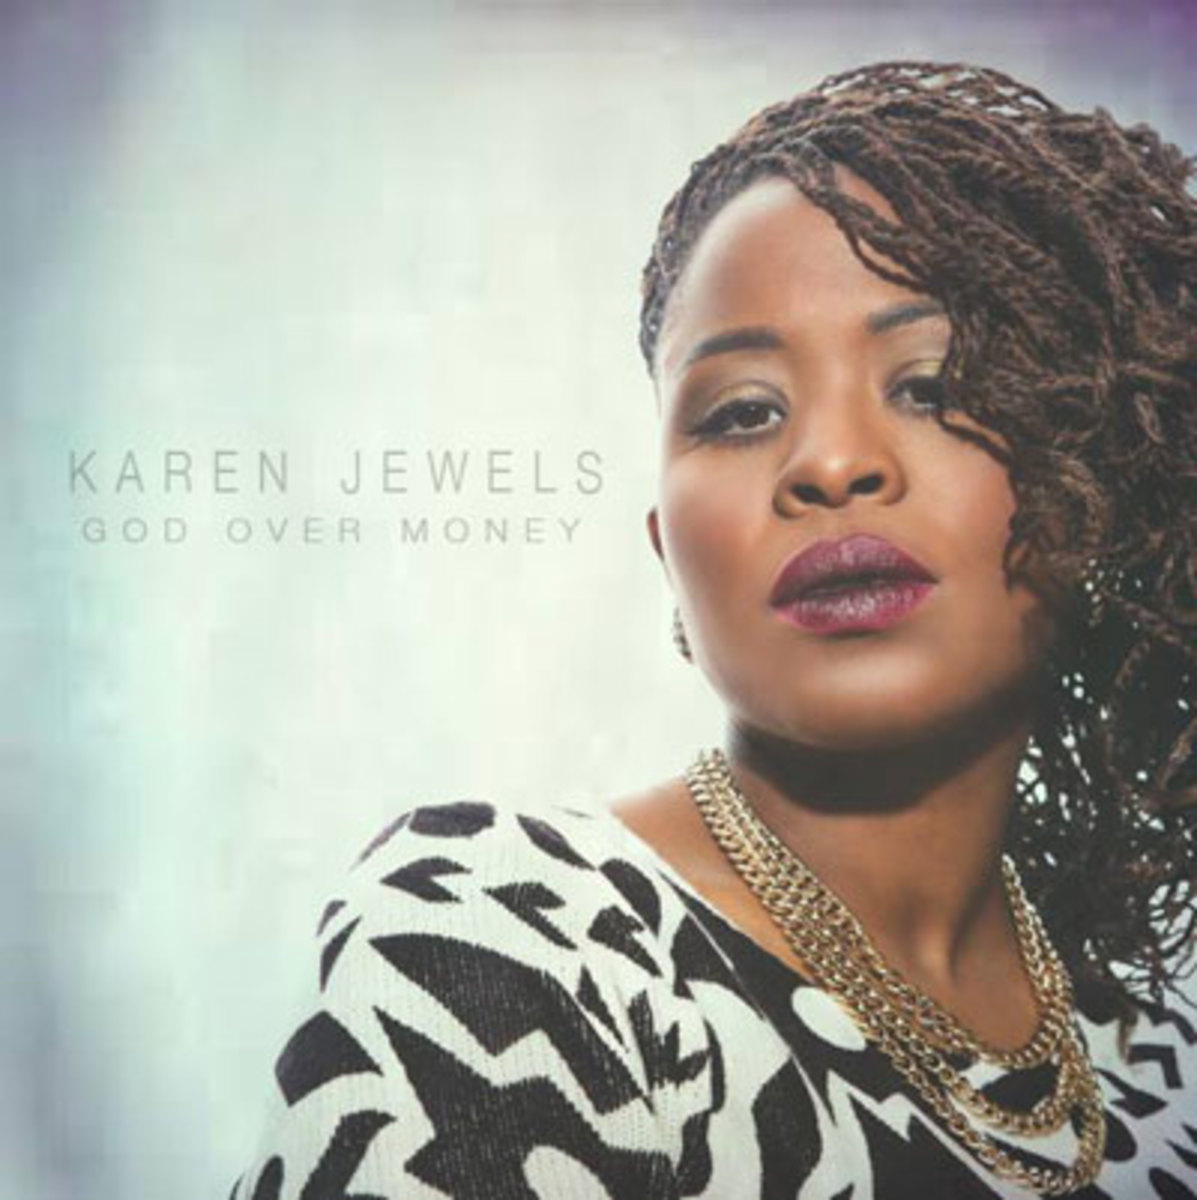 karenjewels-gdmoney.jpg